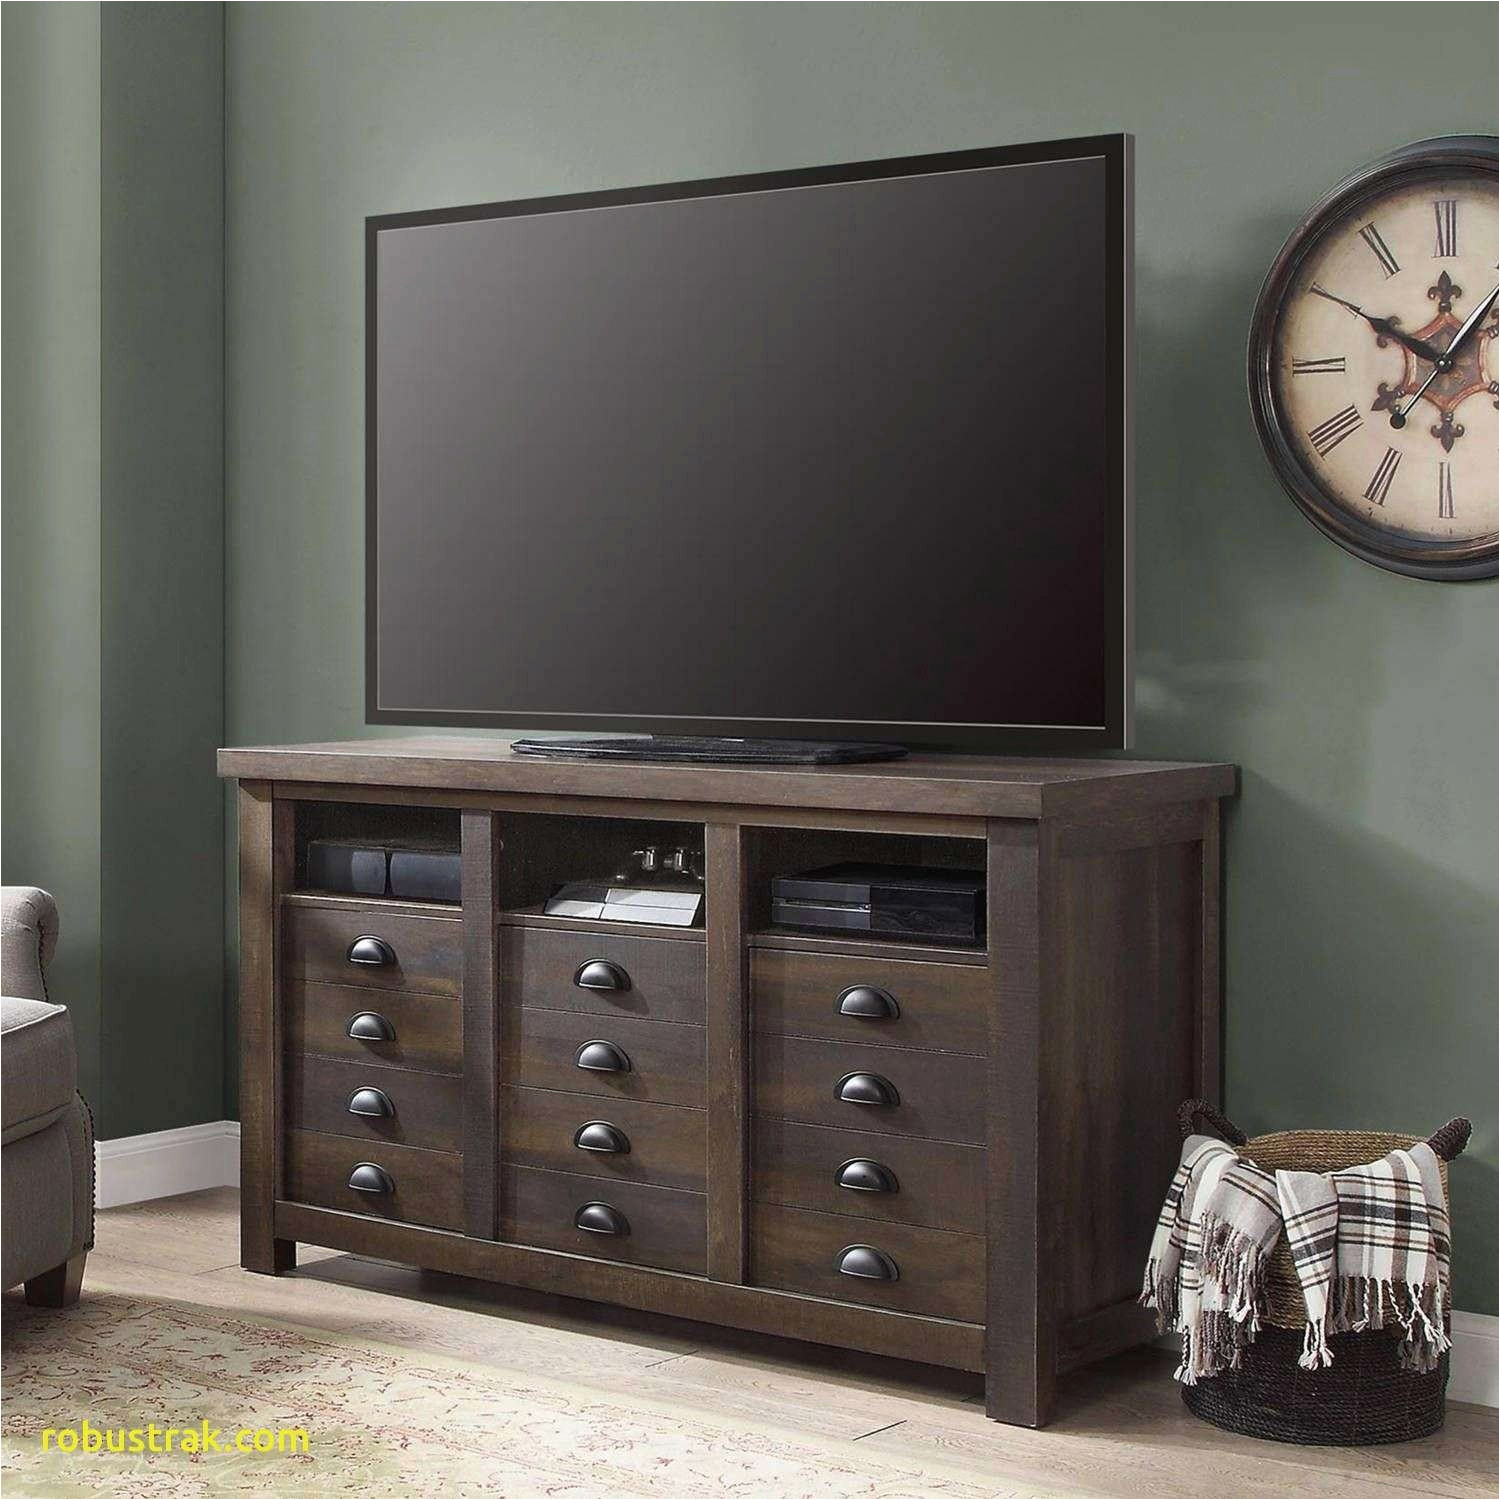 Tv Lift Cabinet For End Of Bed Diy Bett Mit Tv Tv Lift Cabinet For End